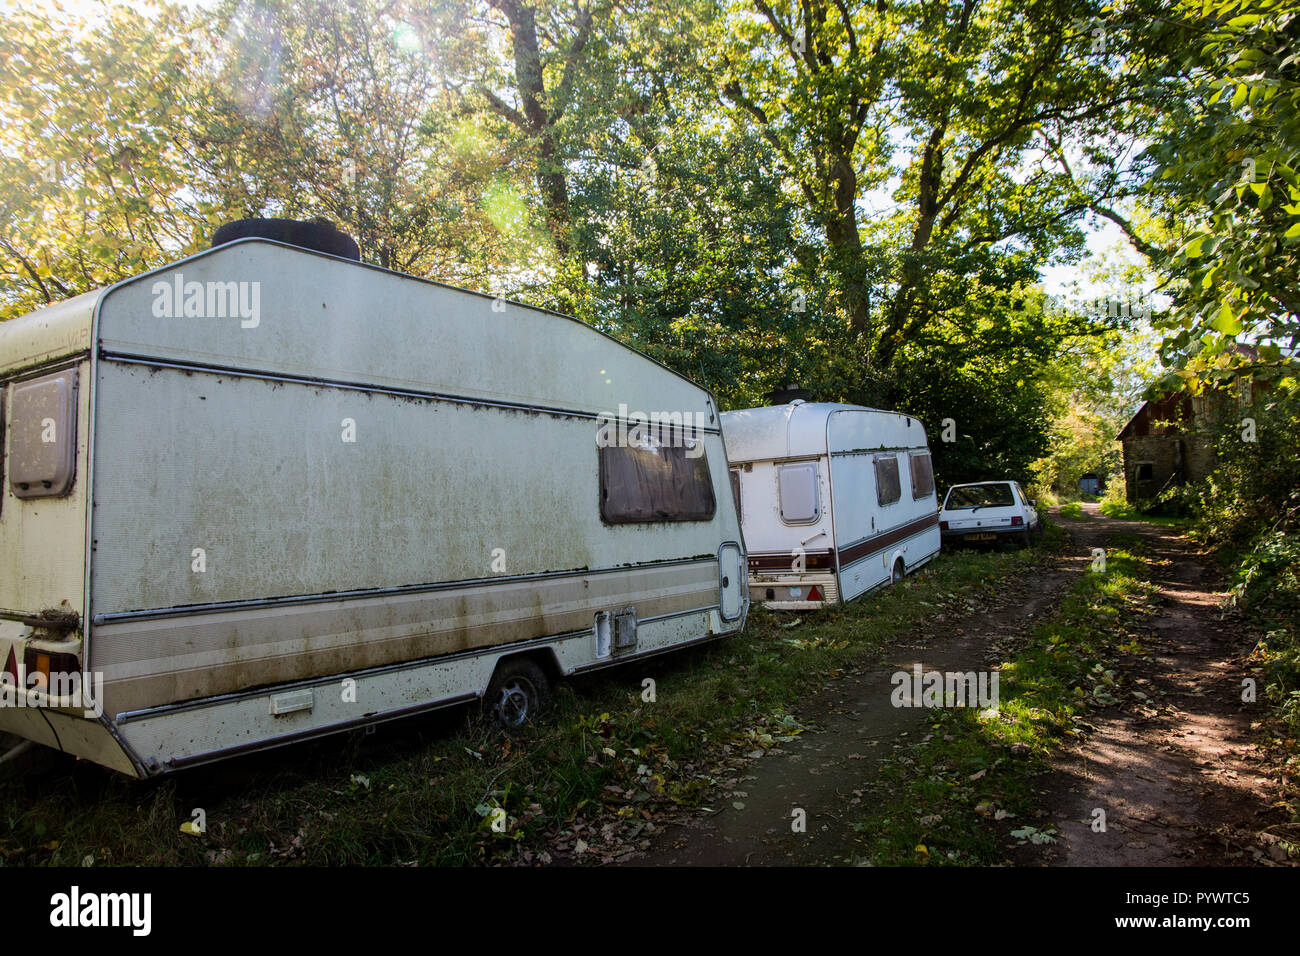 Caravan living accomodation for farmworkers Herefordshire UK 2018 - Stock Image